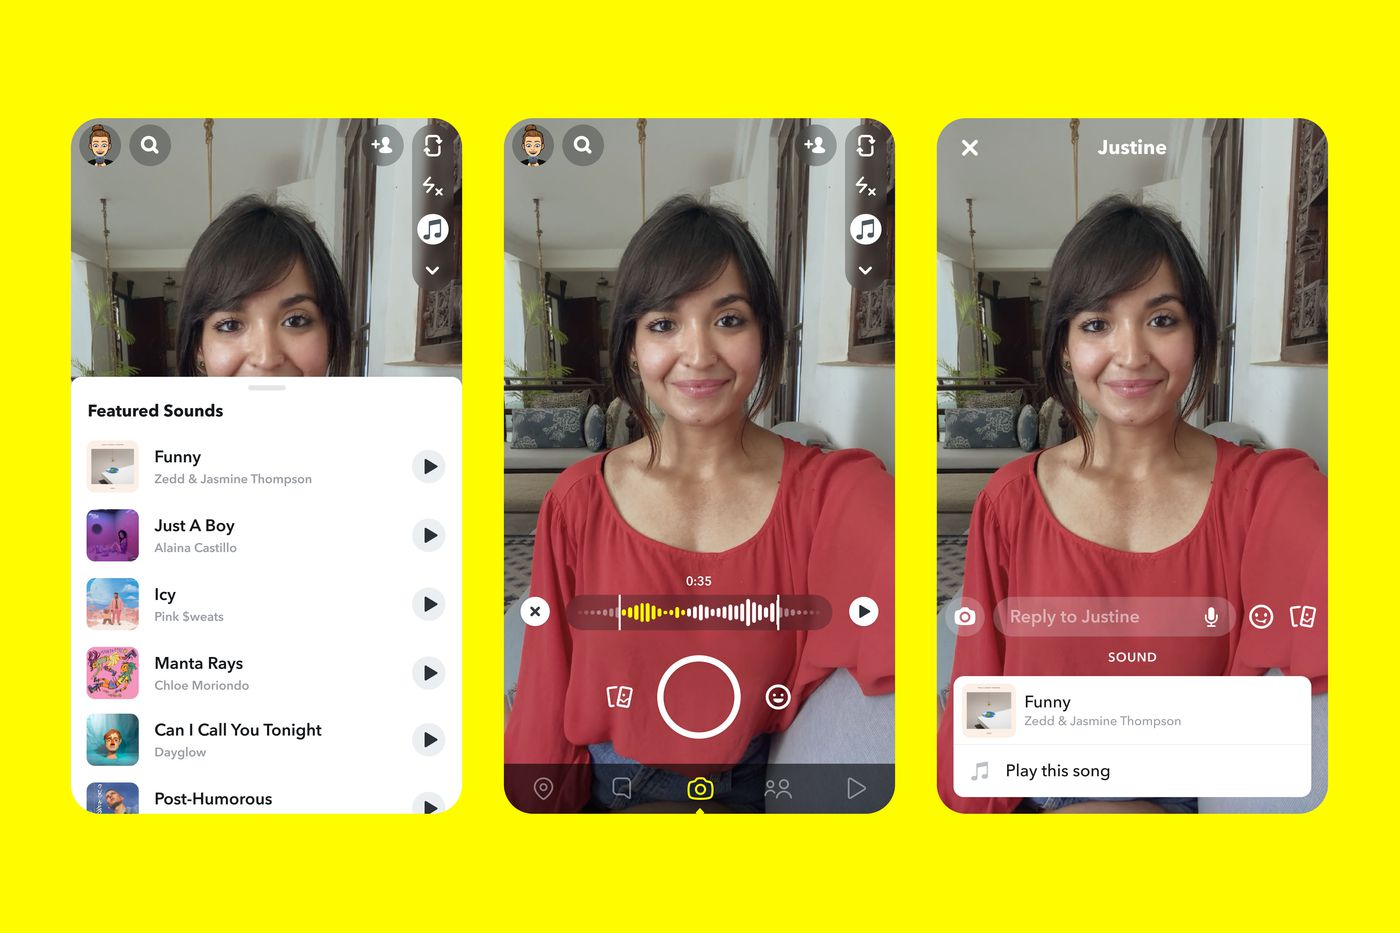 Snapchat is adding a TikTok-style music feature - The Verge